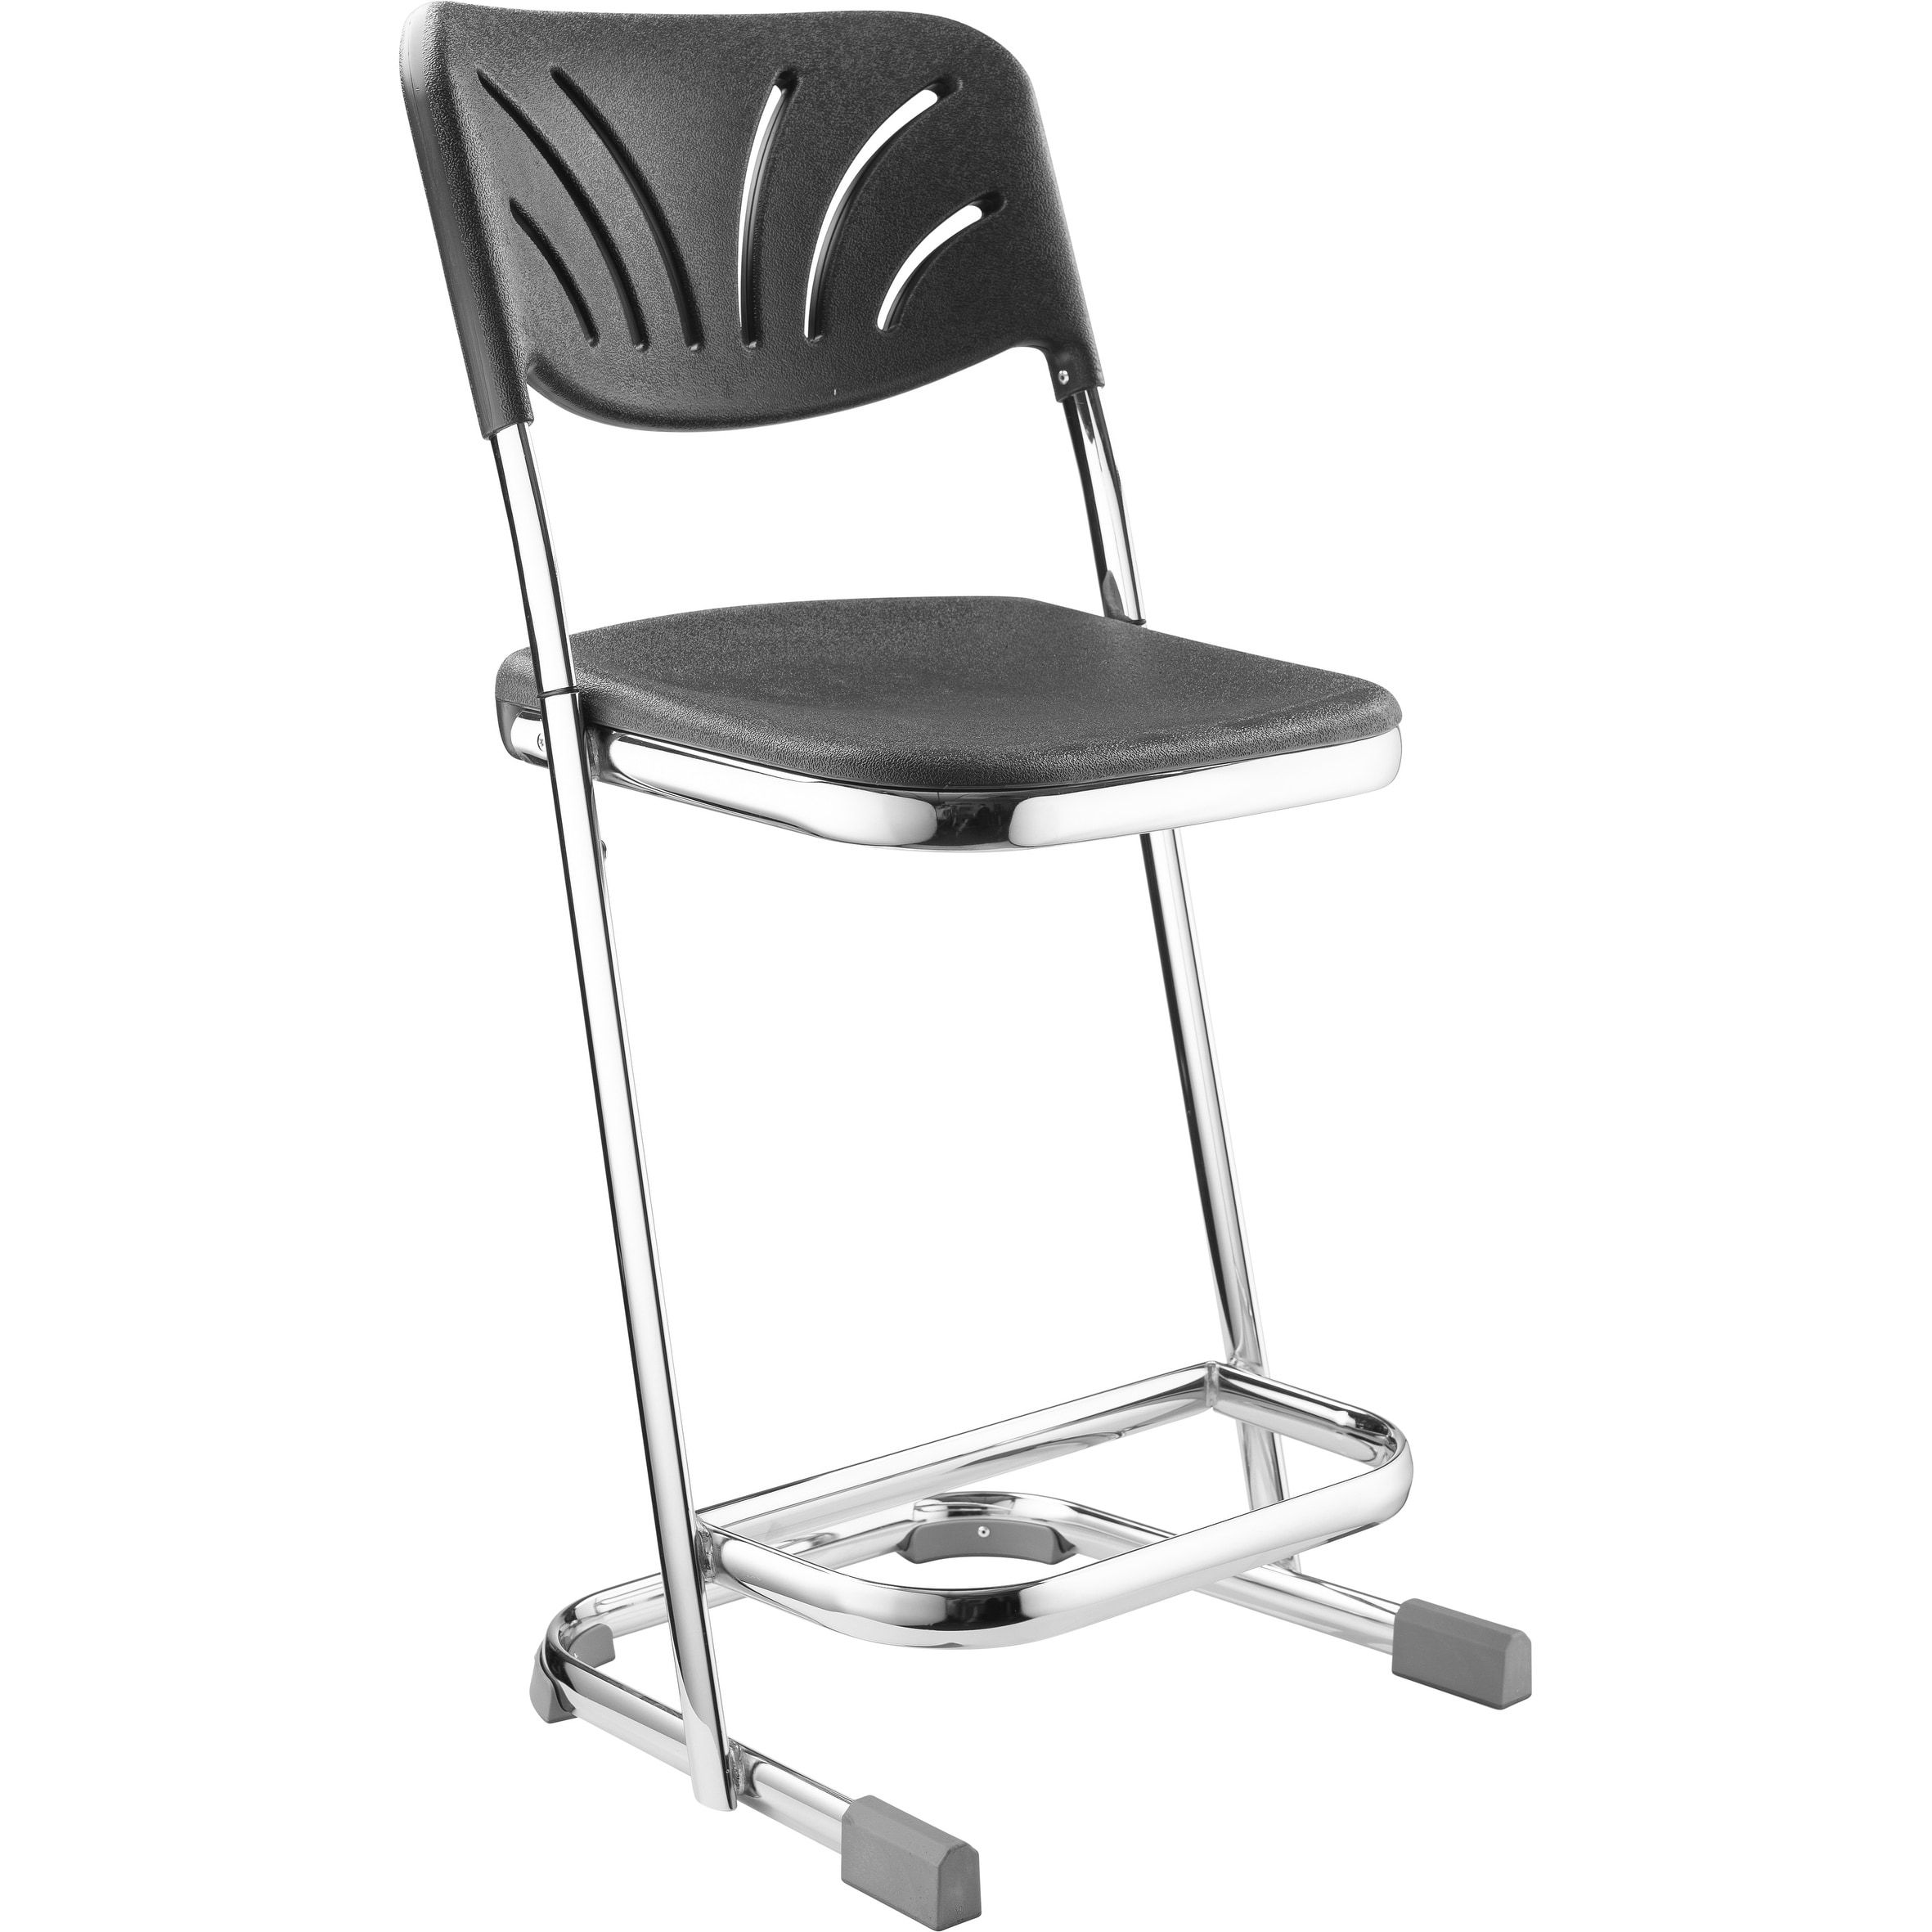 Nps 22 Inch Z Stool With Backrest 22 H Heavy Duty Stool W Fan Back Backrest Black National Public Seating Public Seating Industrial Dining Chairs Home Bar Furniture